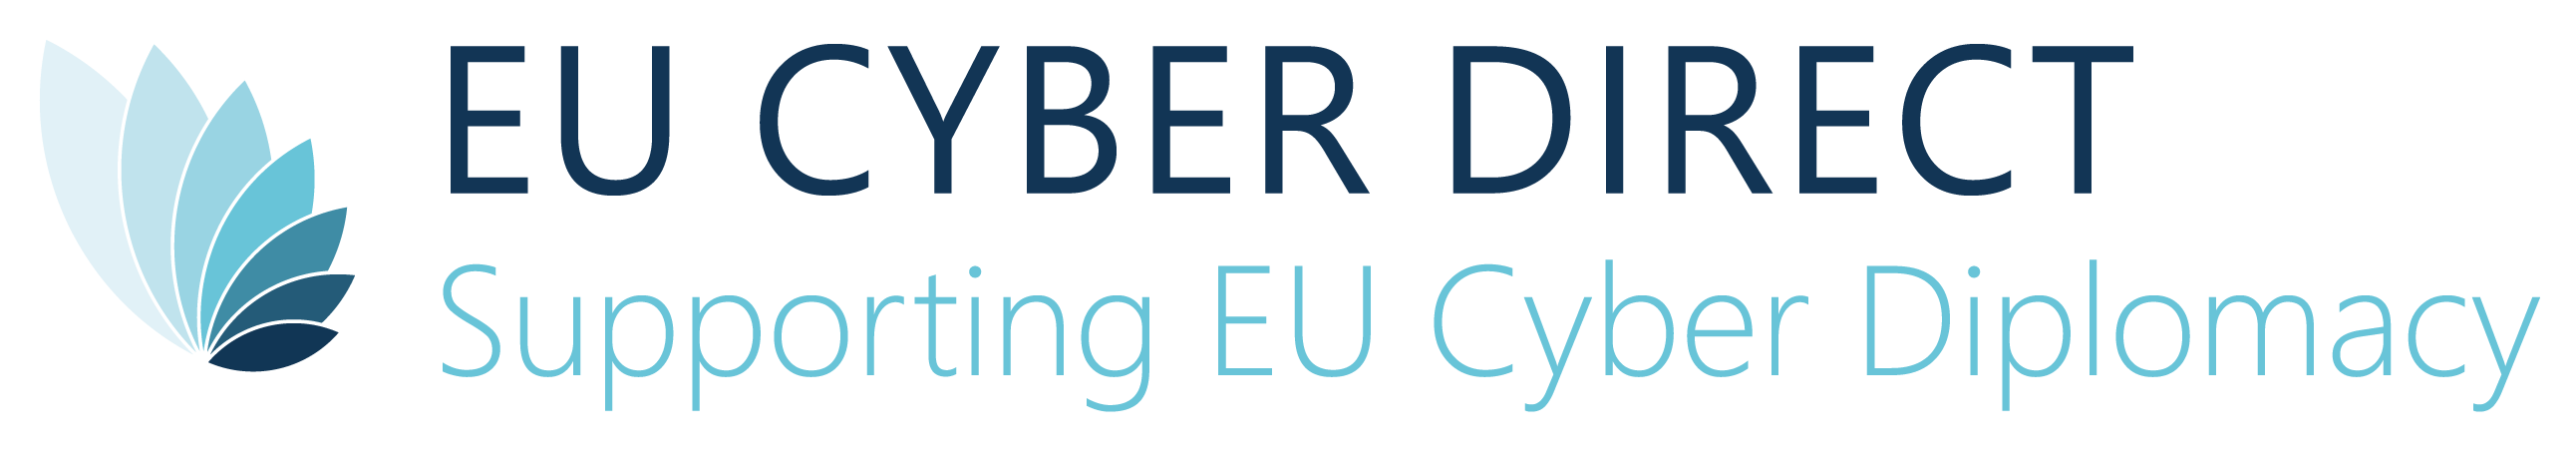 EU Cyber Direct logo